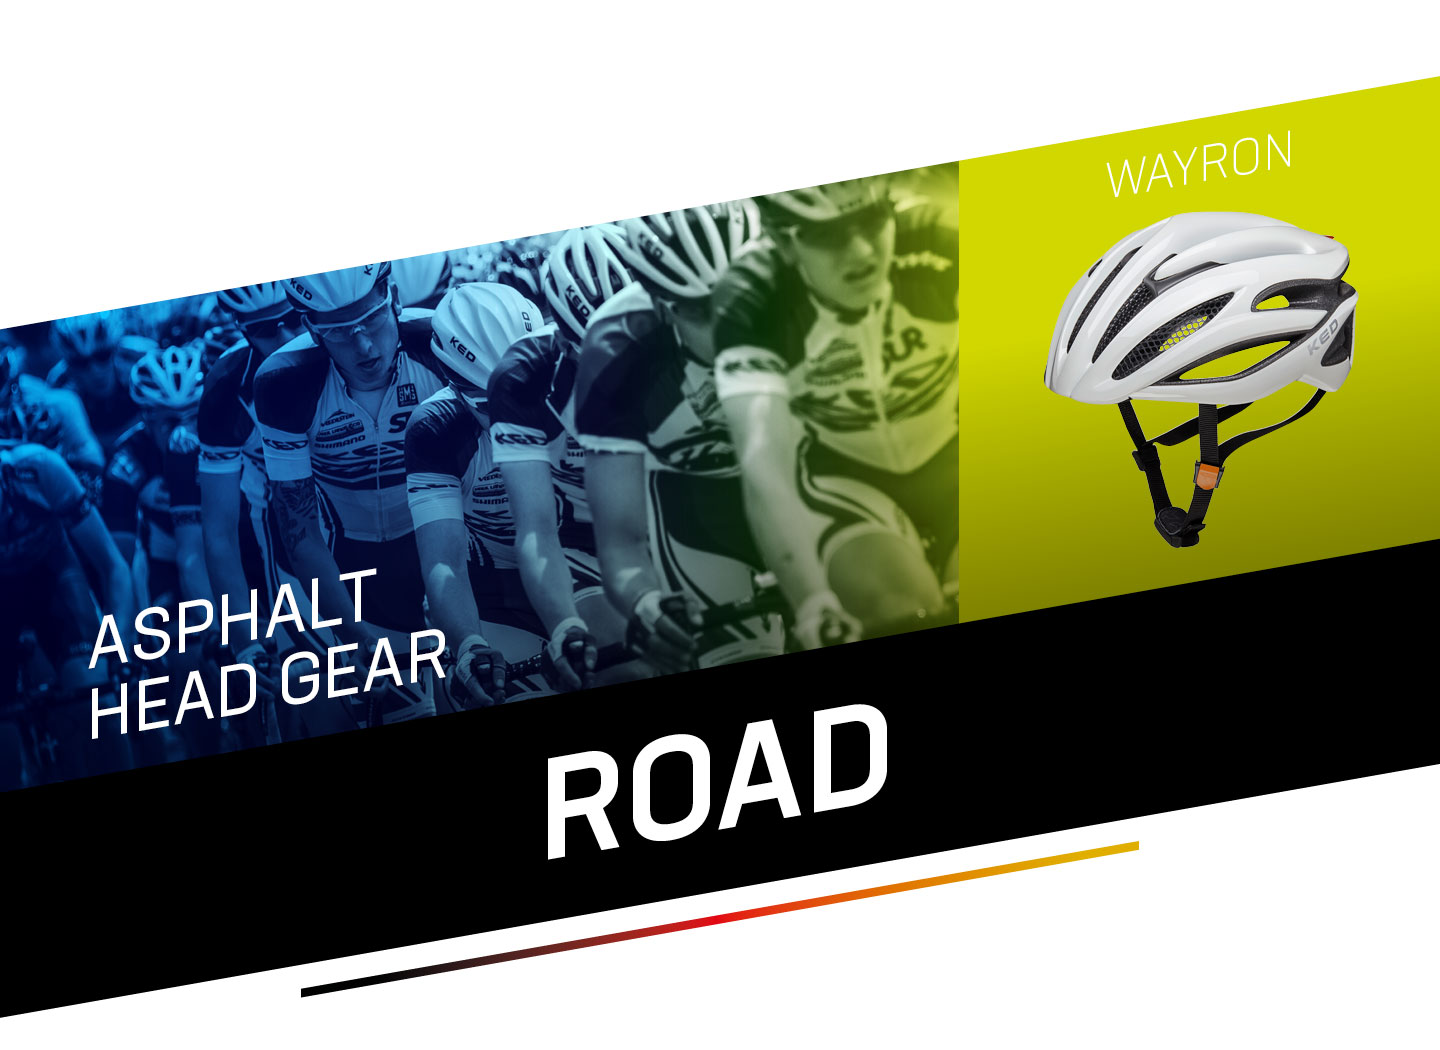 Road - Asphalt Head Gear